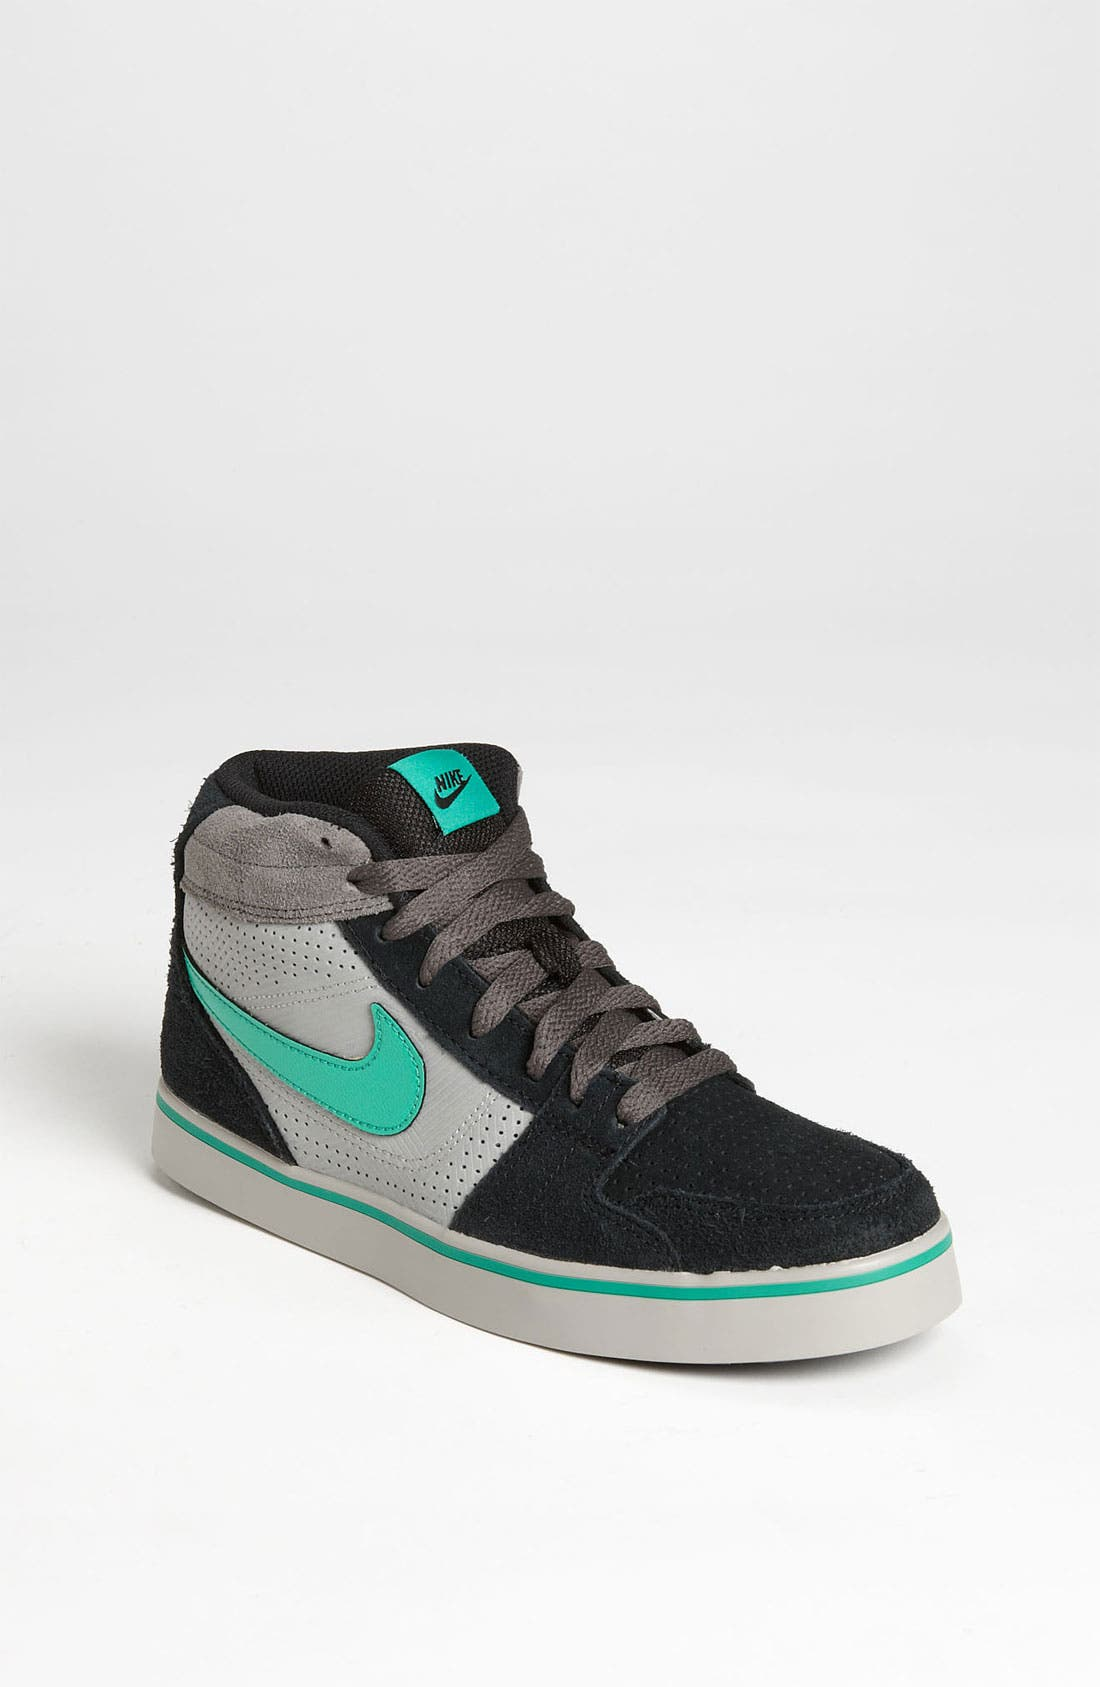 Main Image - Nike 'Ruckus Mid Jr. 6.0' Sneaker (Toddler, Little Kid & Big Kid)